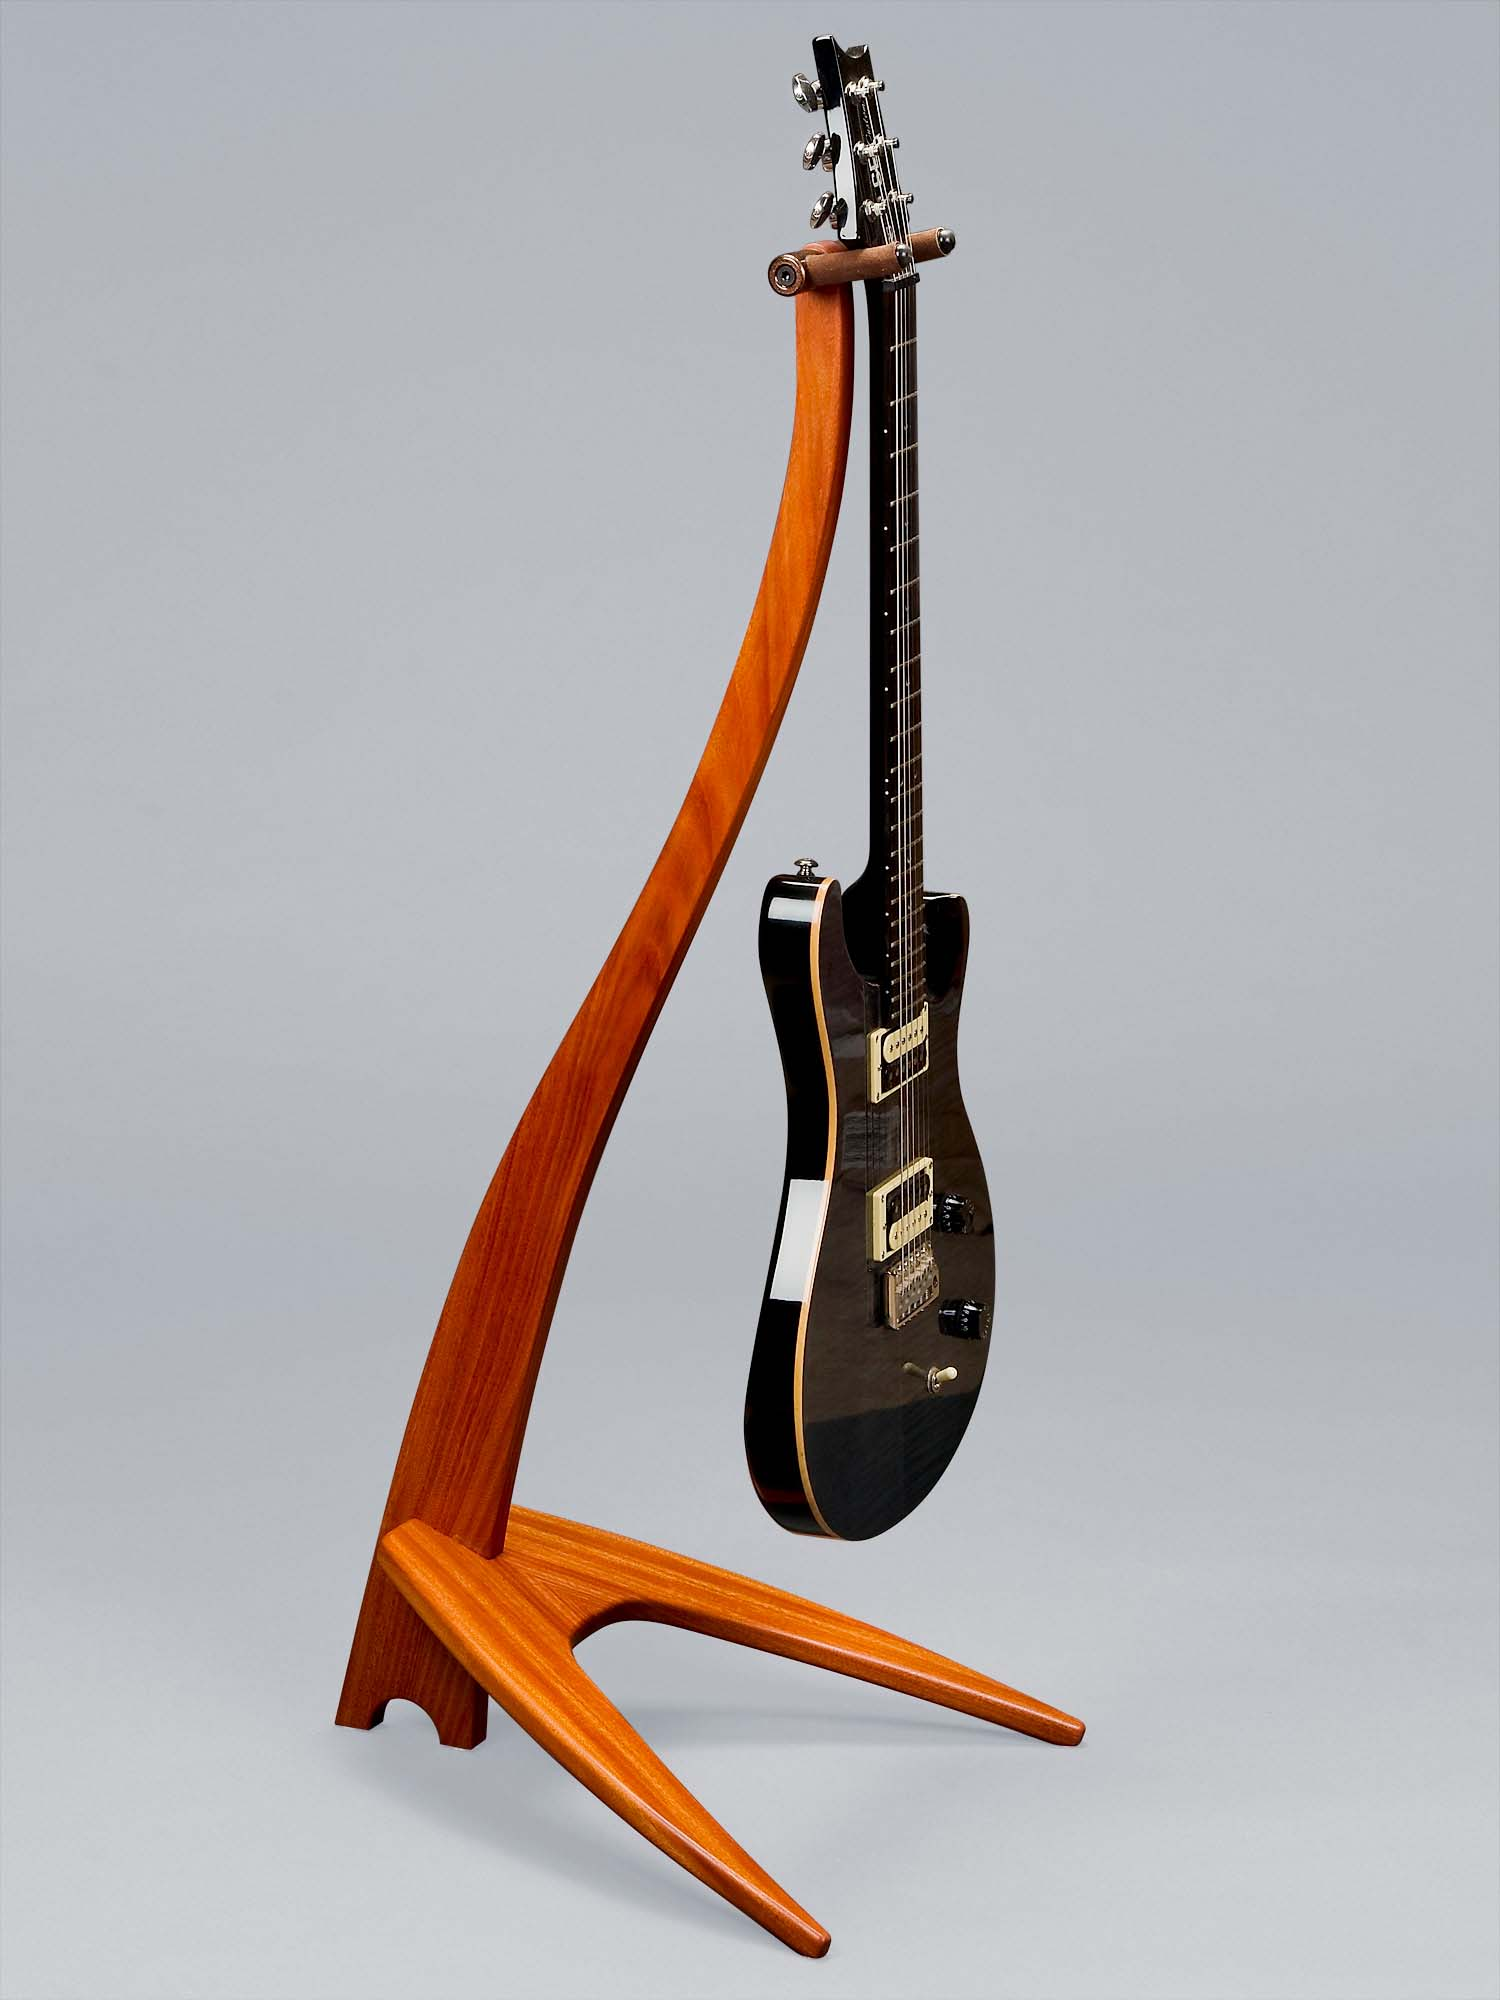 Guitar Stand Designs : Wm design guitar stand